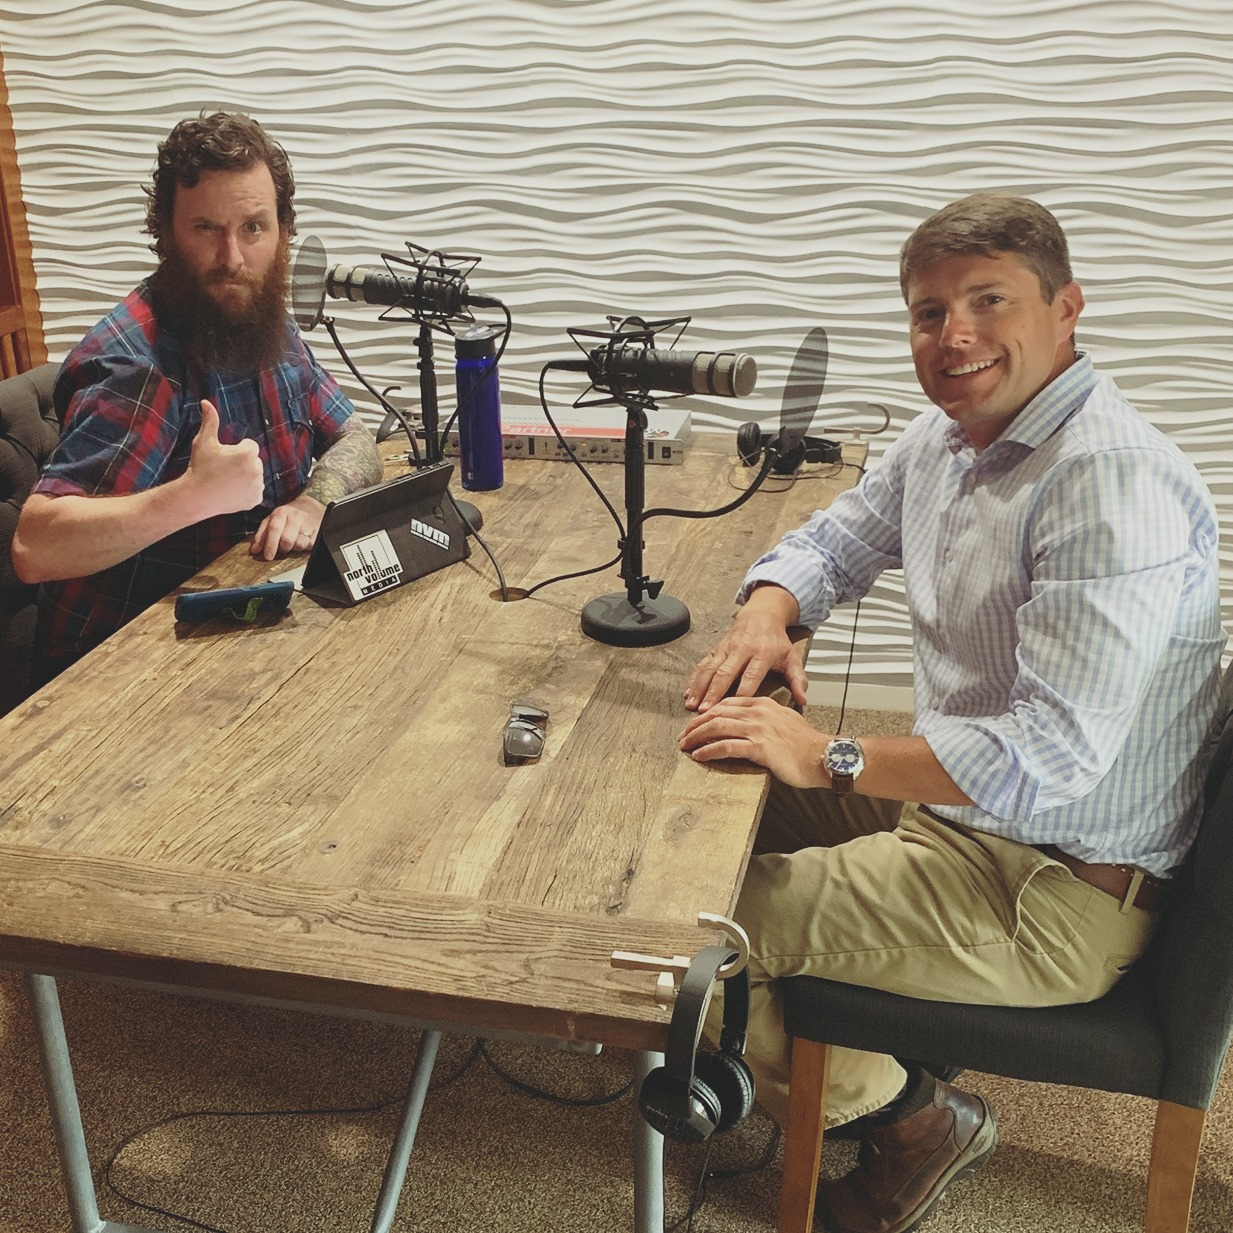 Assemblyman Billy Jones joined Nicholas Dubay at North Volume Media Studios to record an episode of the Mental Health Survival Guide Podcast in July 2019.